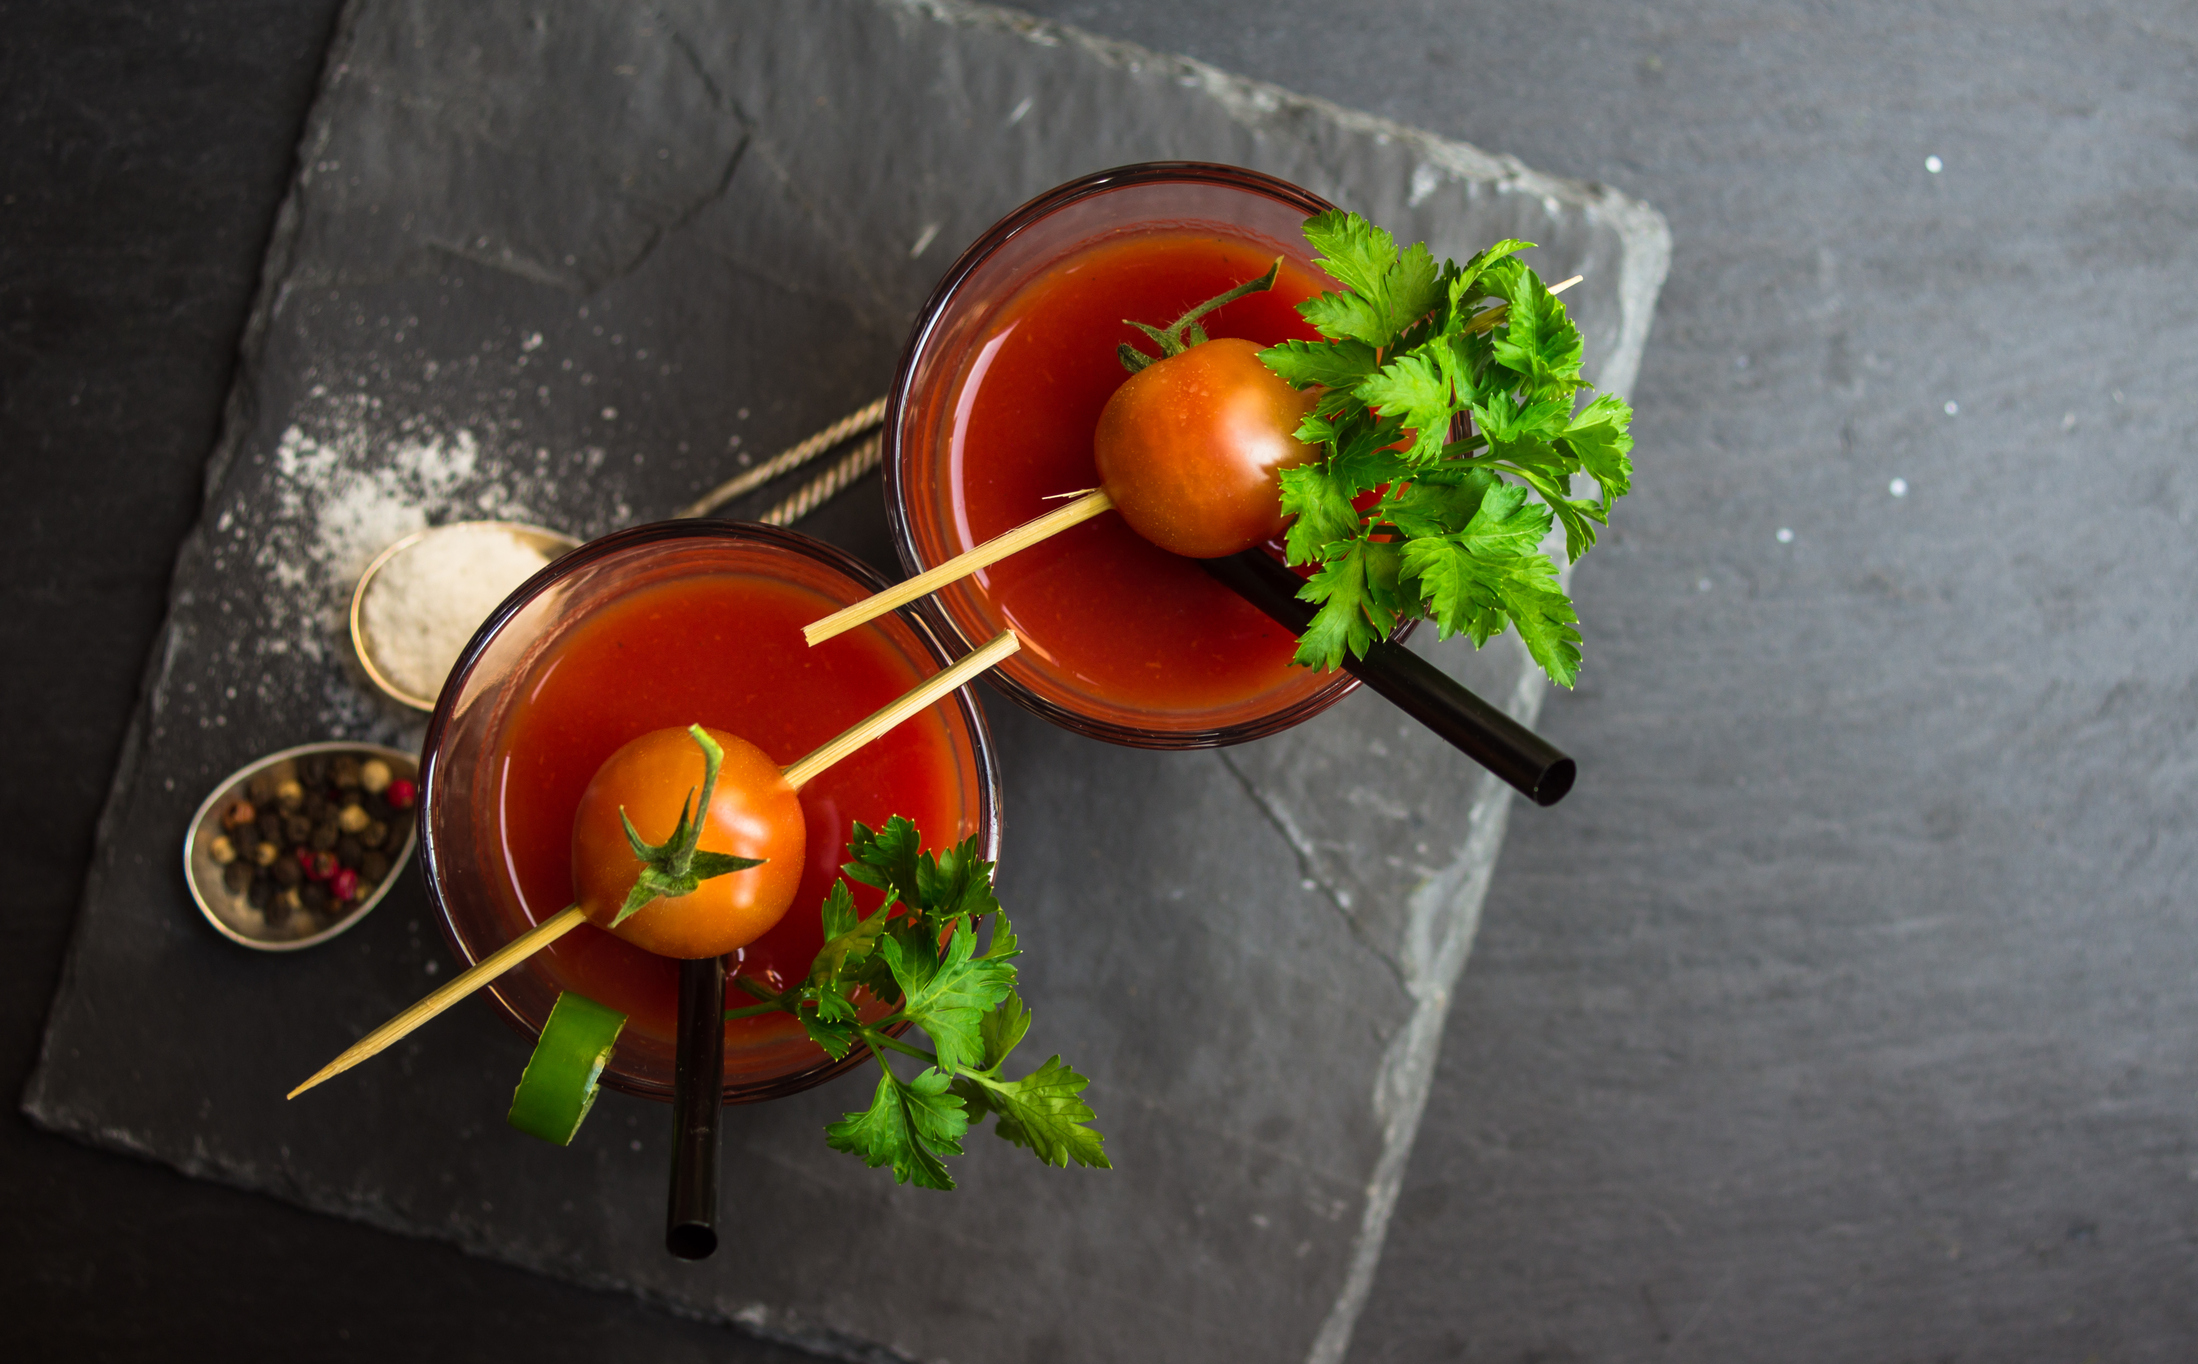 Fresh tomato juice with cherry tomatoes and chili pepper on rustic background